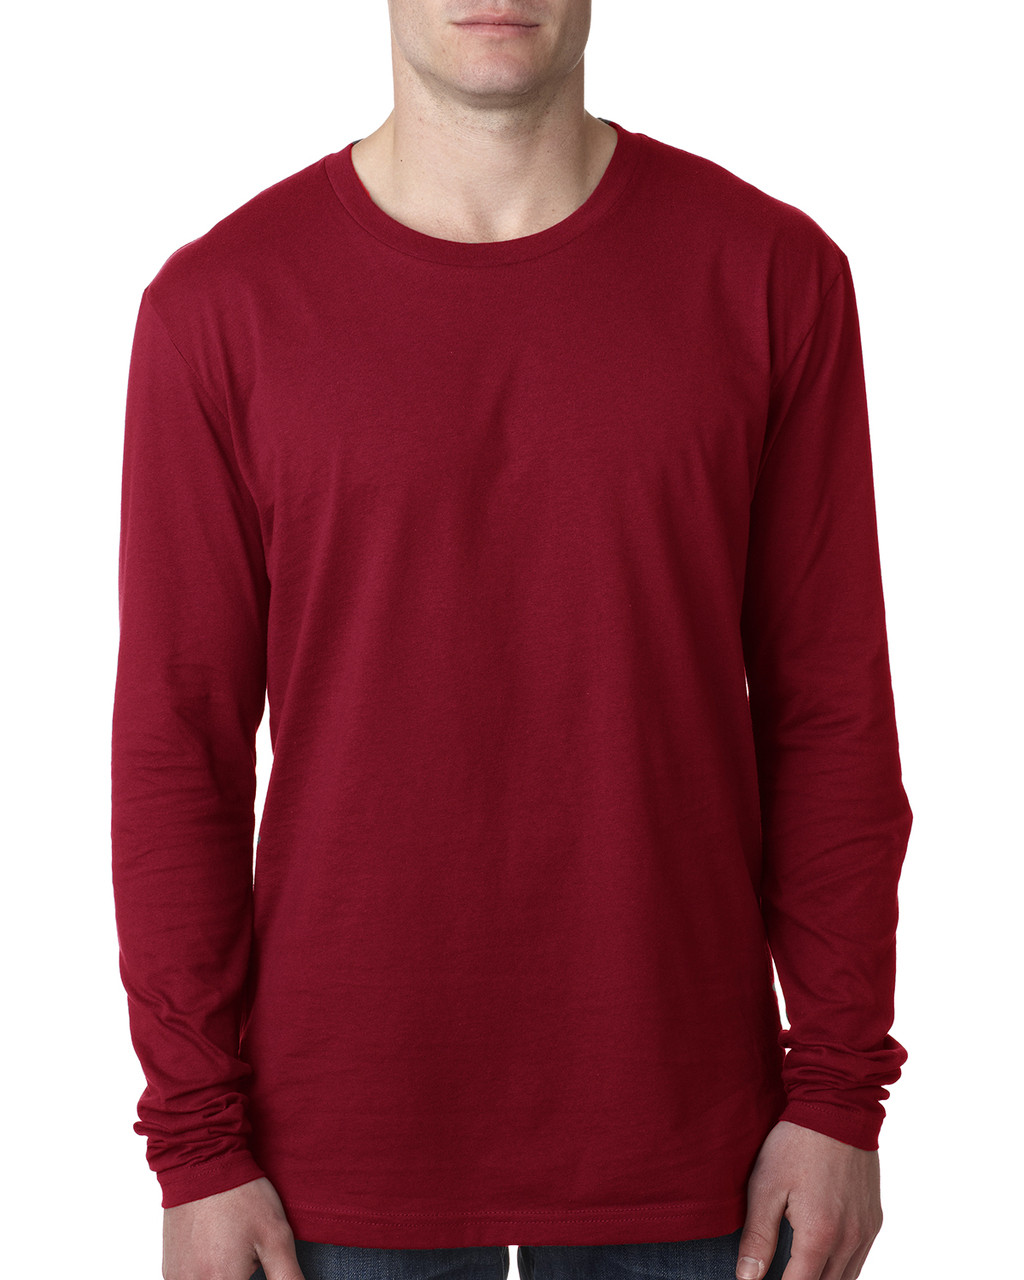 Cardinal - N3601 Next Level Men's Premium Fitted Long Sleeve Crew Tee | Blankclothing.ca